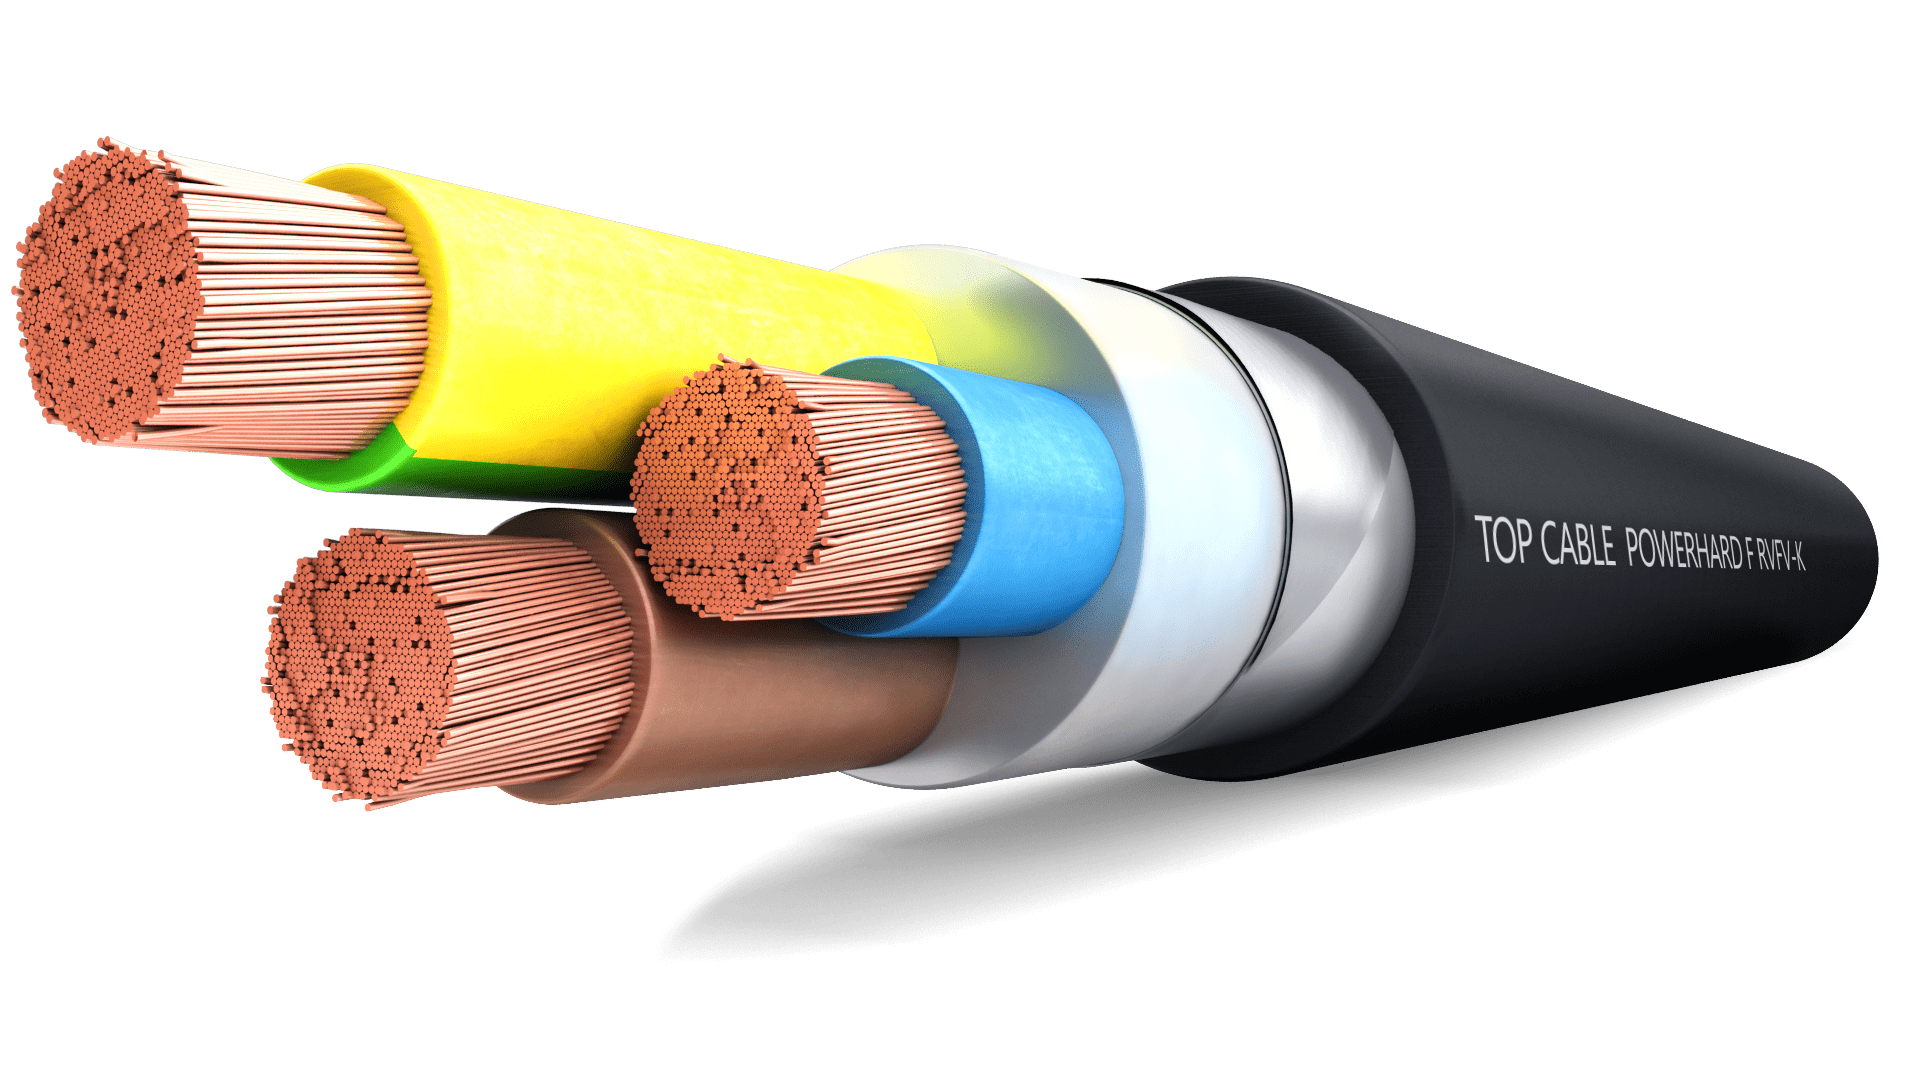 Powerhard F Rvfv K Armoured Cable Top Cable